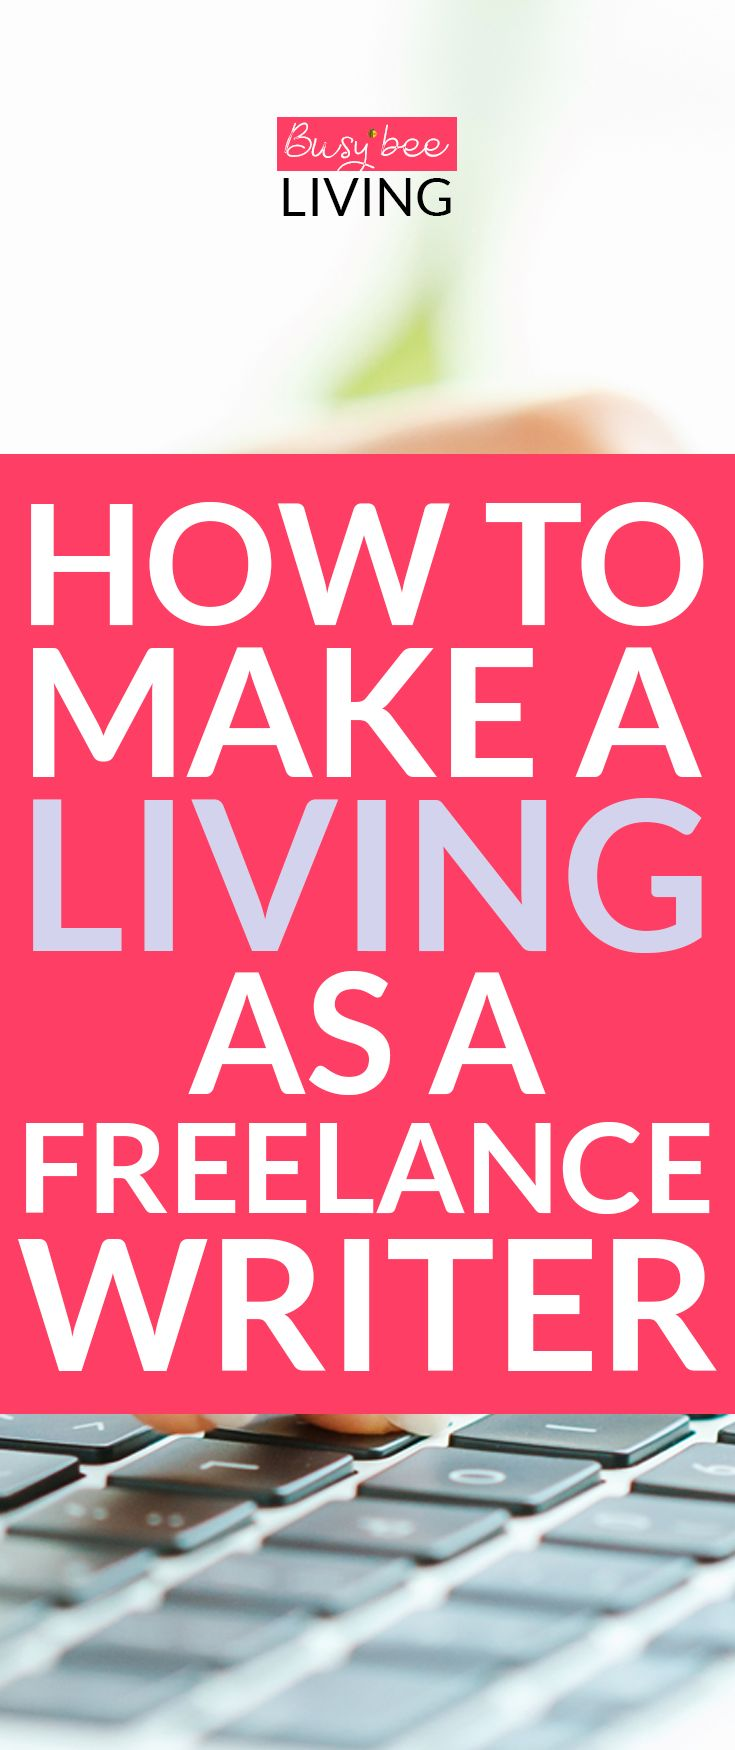 Want to make money online? Become a freelance writer! You can work whenever you want and earn as much as like! This is the perfect way to work from home and set your own hours. Great for stay at home moms or students who need to pay off any student loans. #sidehustle #workfromhome #makemoneyonline #business